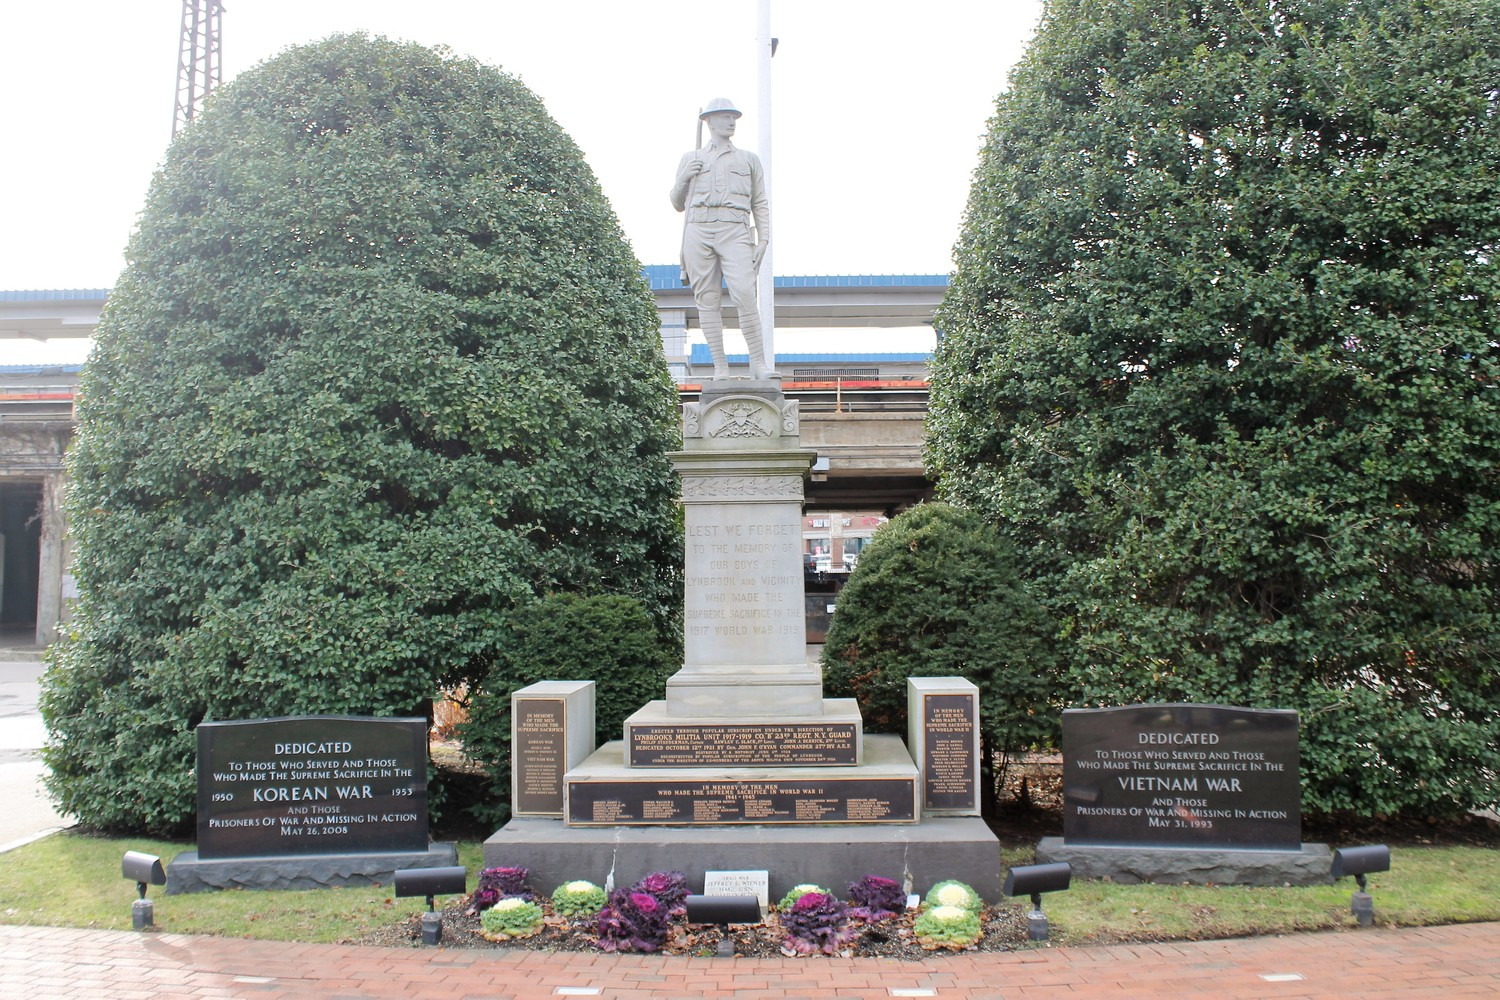 The monument is at the center of Lynbrook's war monuments, dedicated to those residents killed in action in World Wars I and II, and the Korean, Vietnam, and Iraq wars.